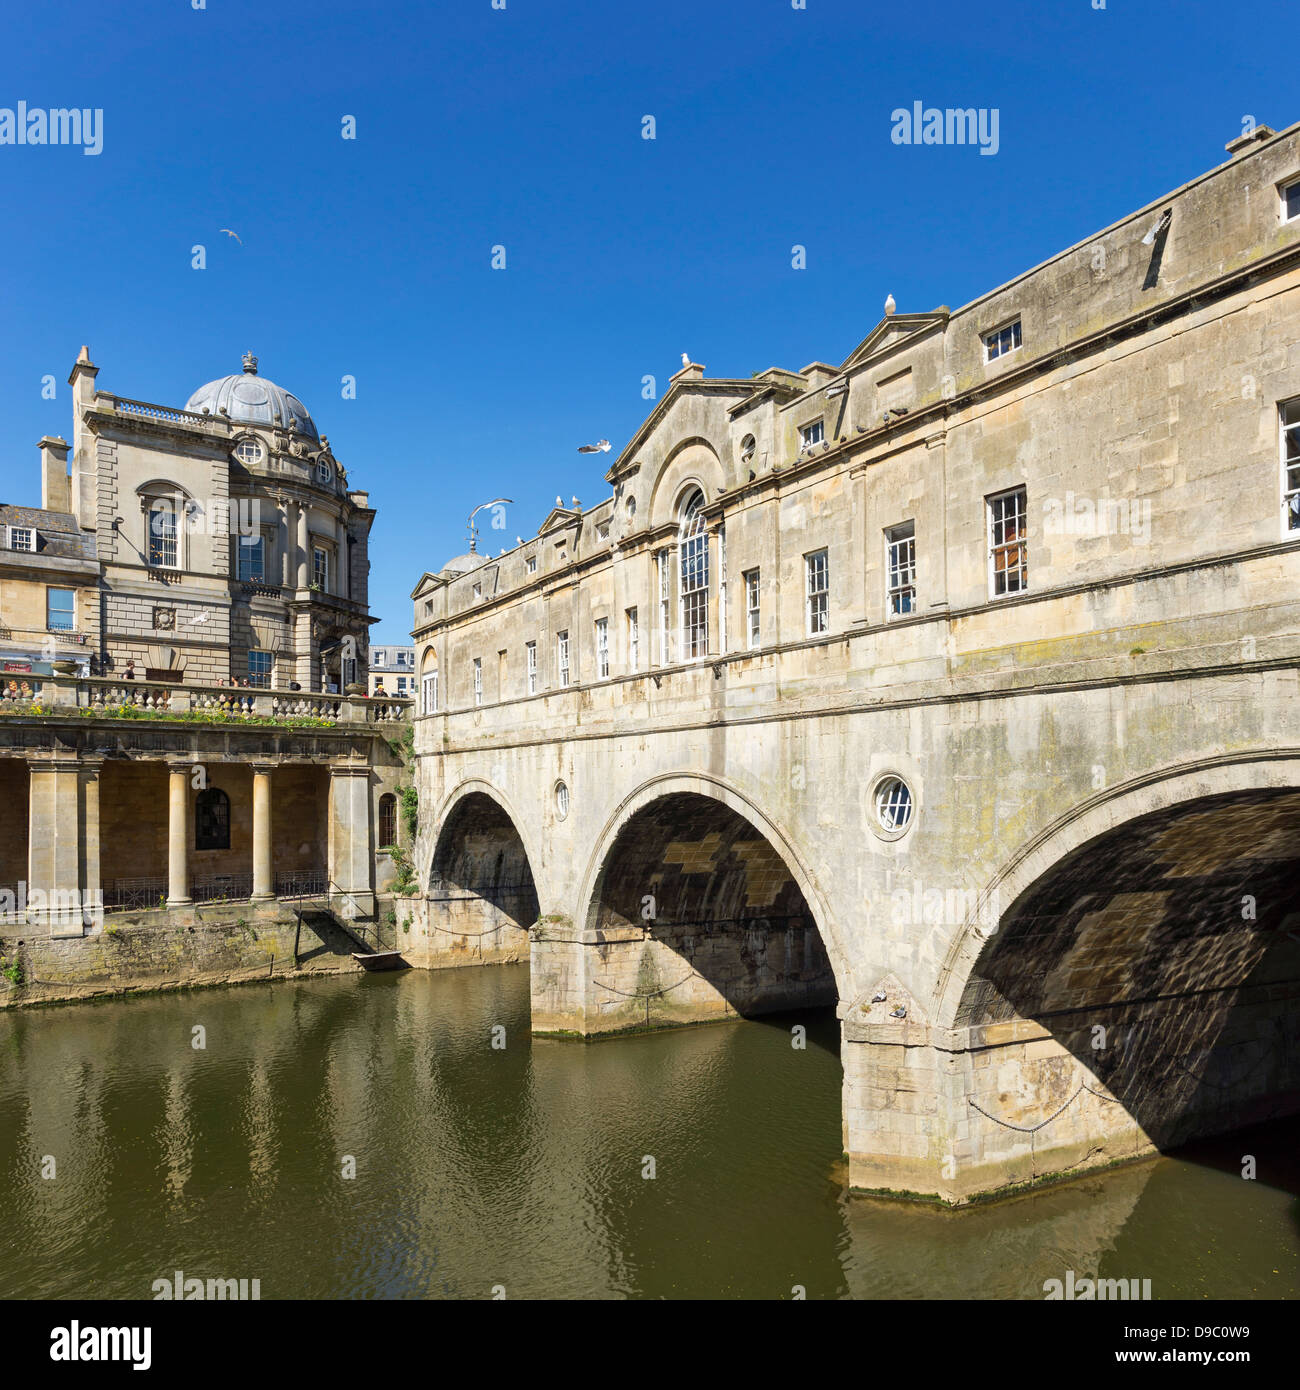 Pulteney Bridge, Bath, England - Stock Image